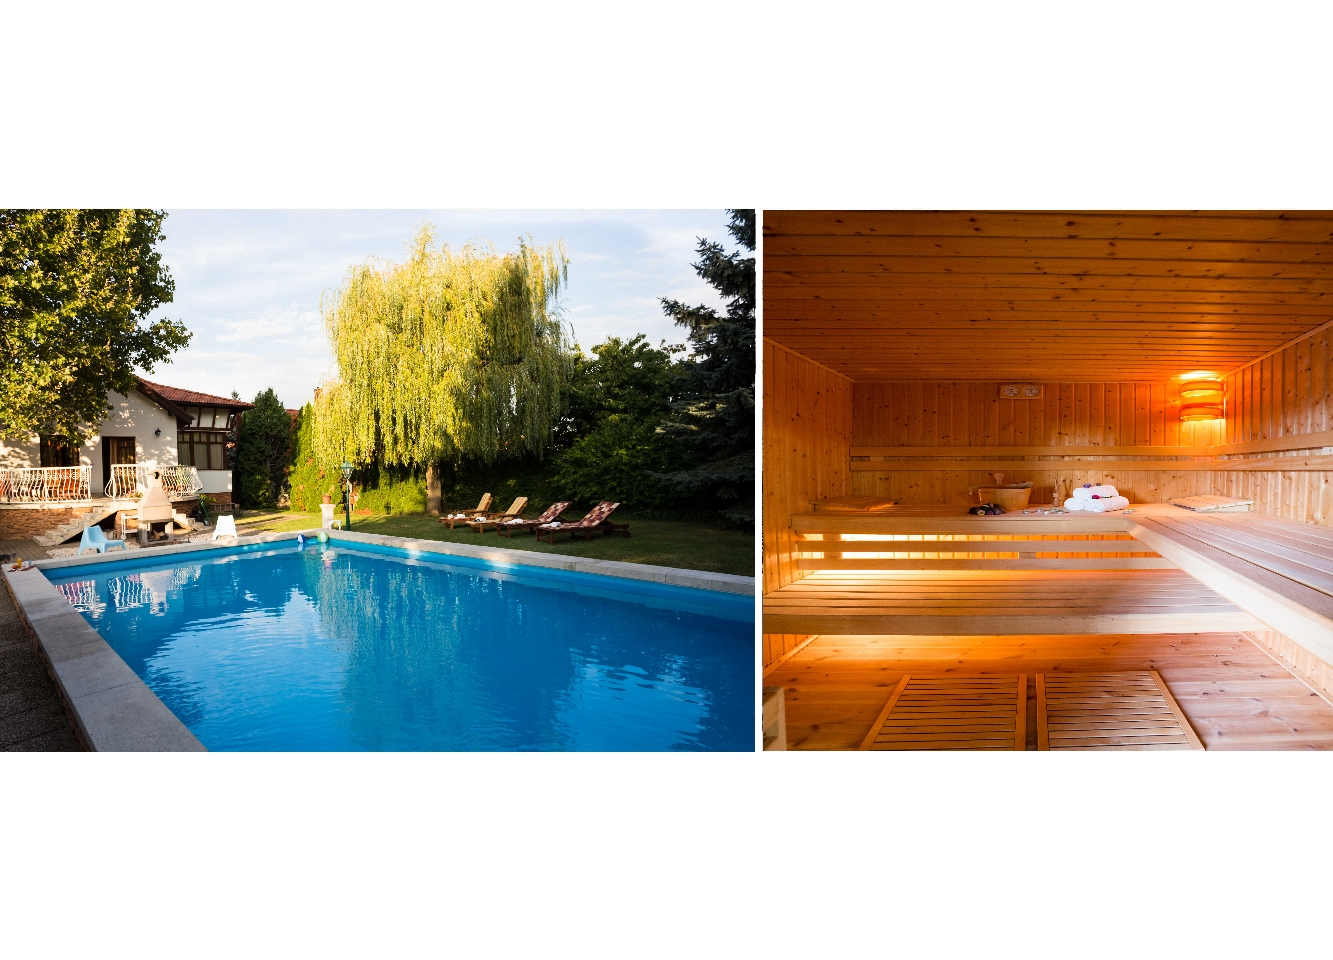 Garden With Swimming Pool mercedes garden – villa with swimming pool + sauna - houses